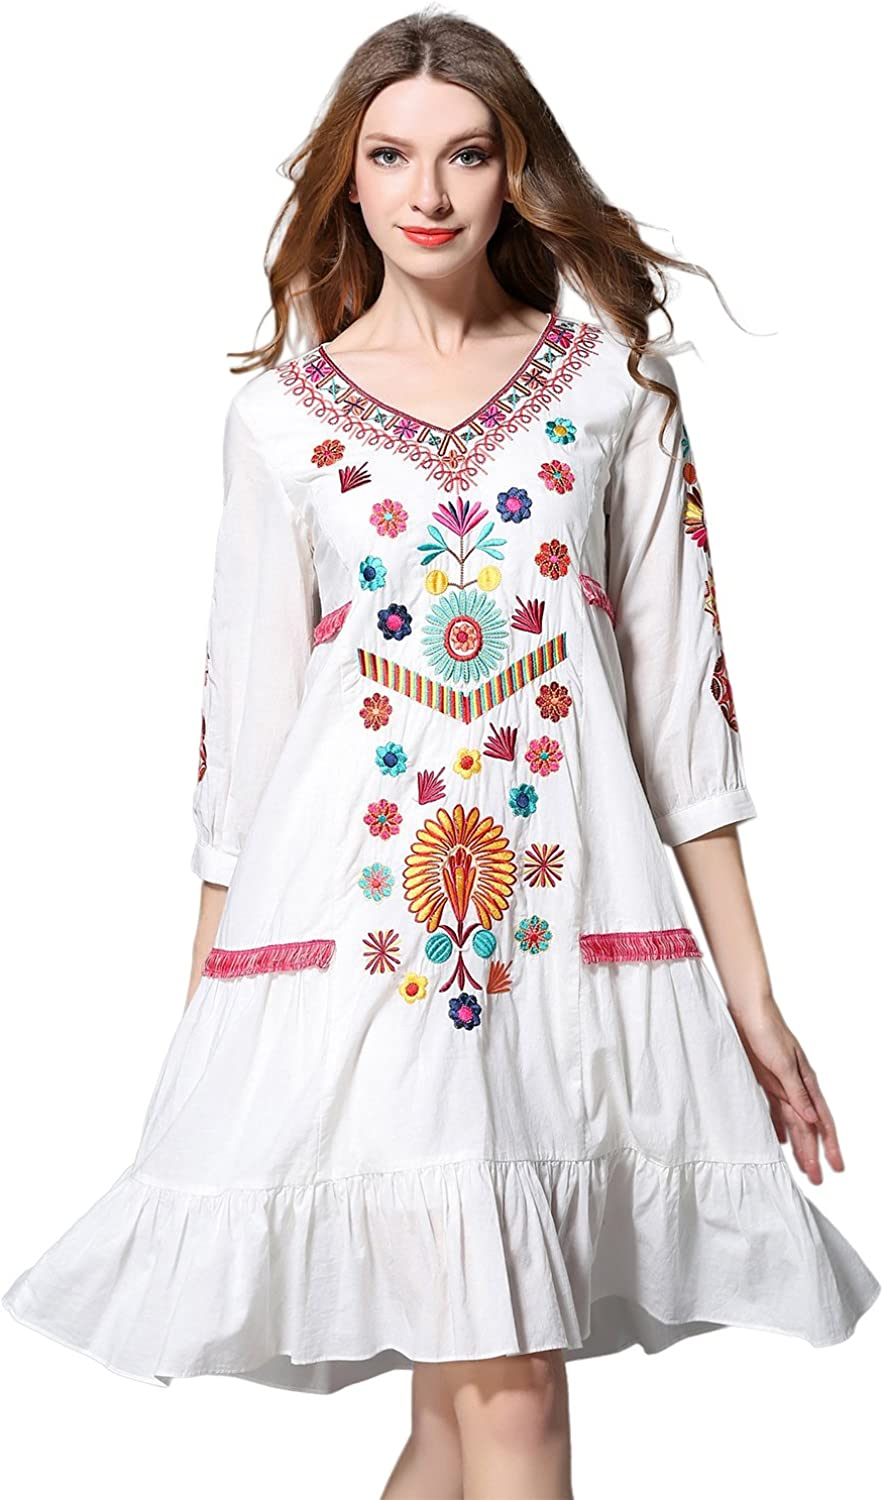 Shineflow Womens Casual 3 4 Sleeve Floral Embroidered Mexican Peasant Dressy Tops Blouses Shirt Dress Tunic